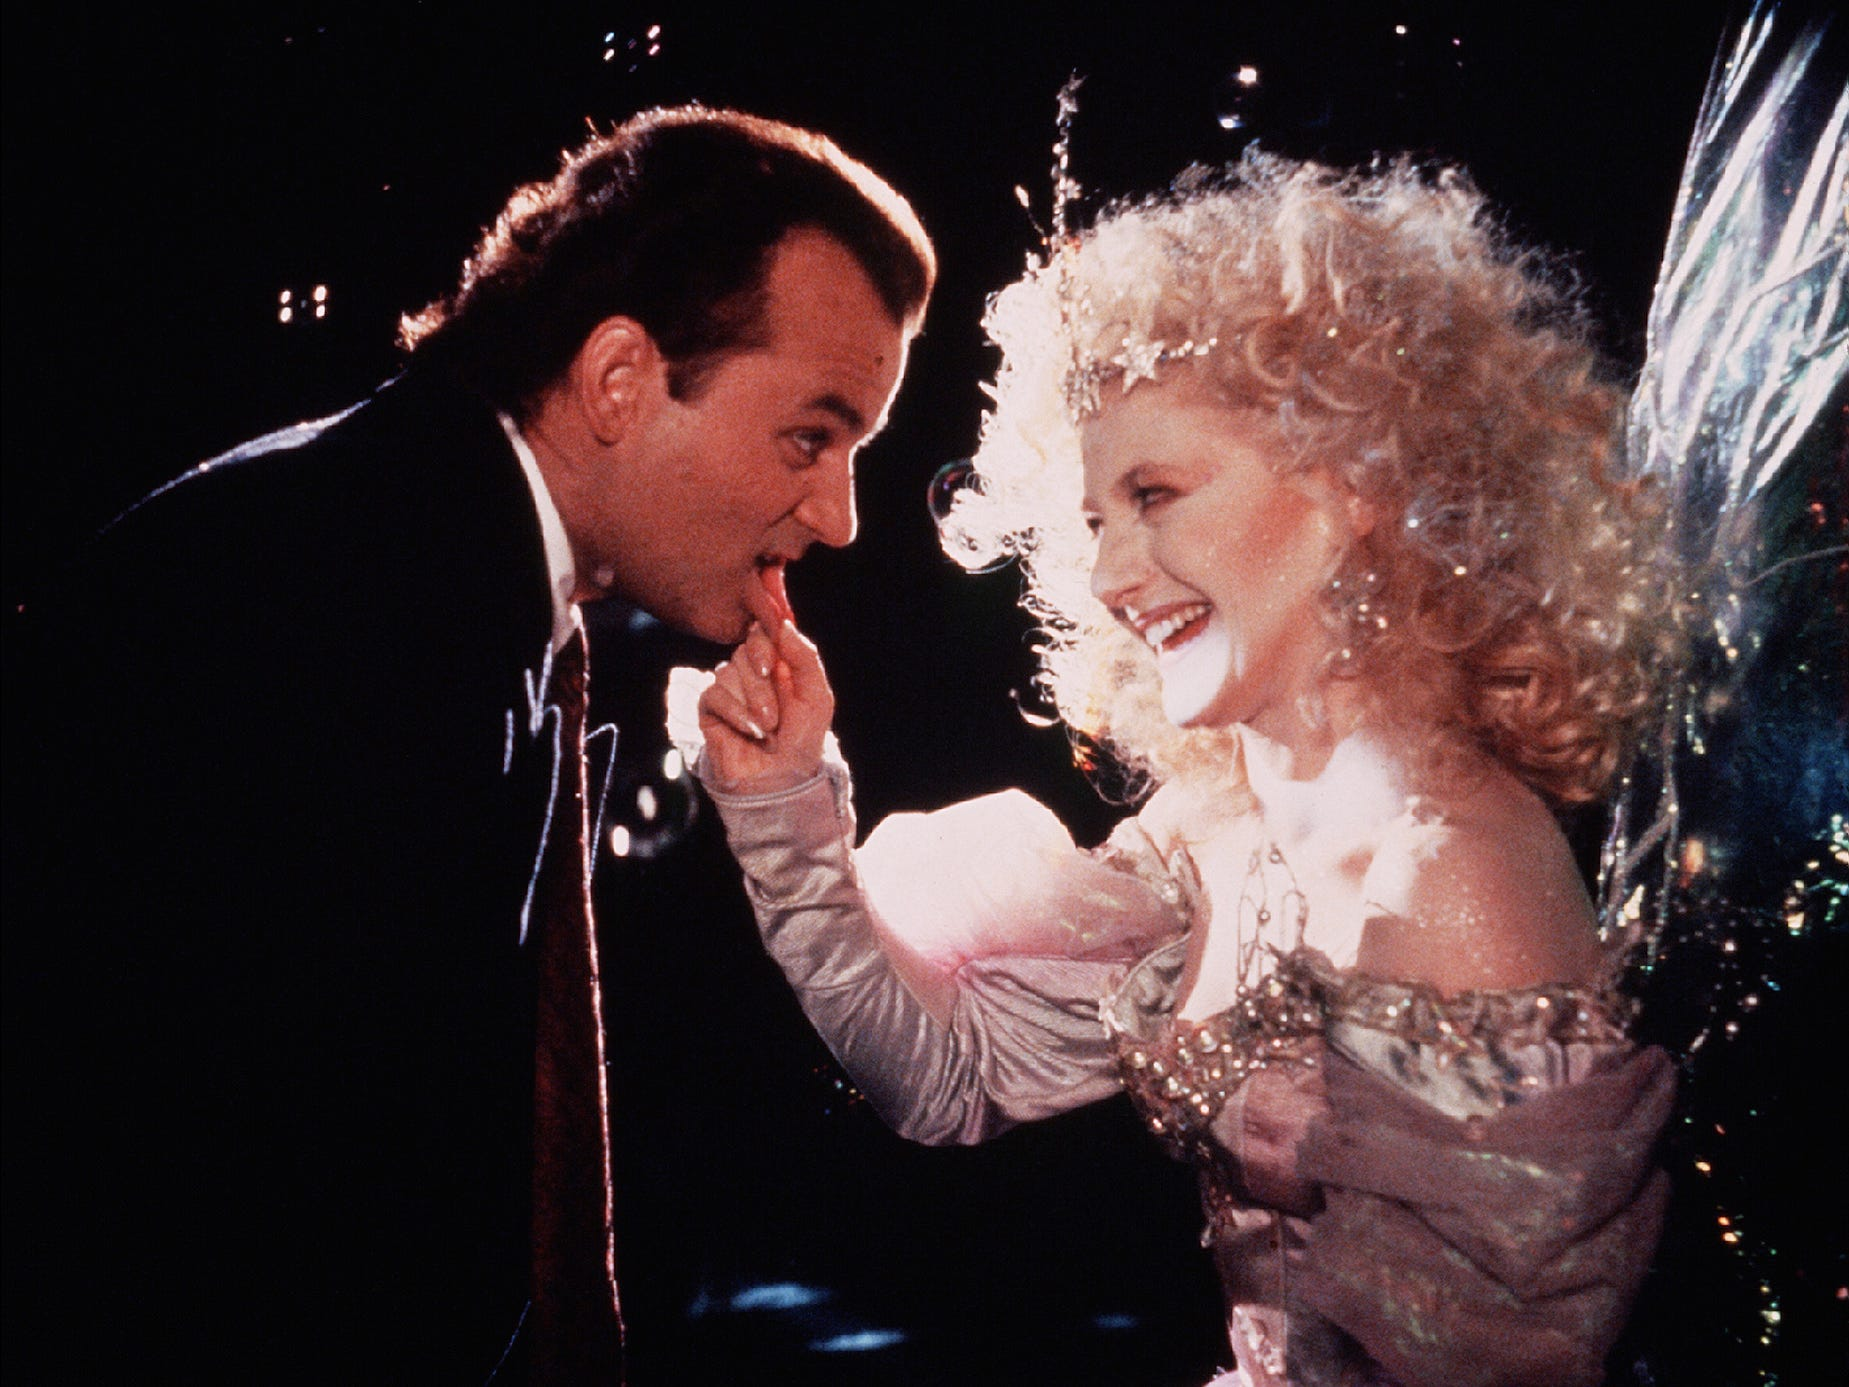 'Scrooged' 30th anniversary: The 20 best Christmas movies, ranked